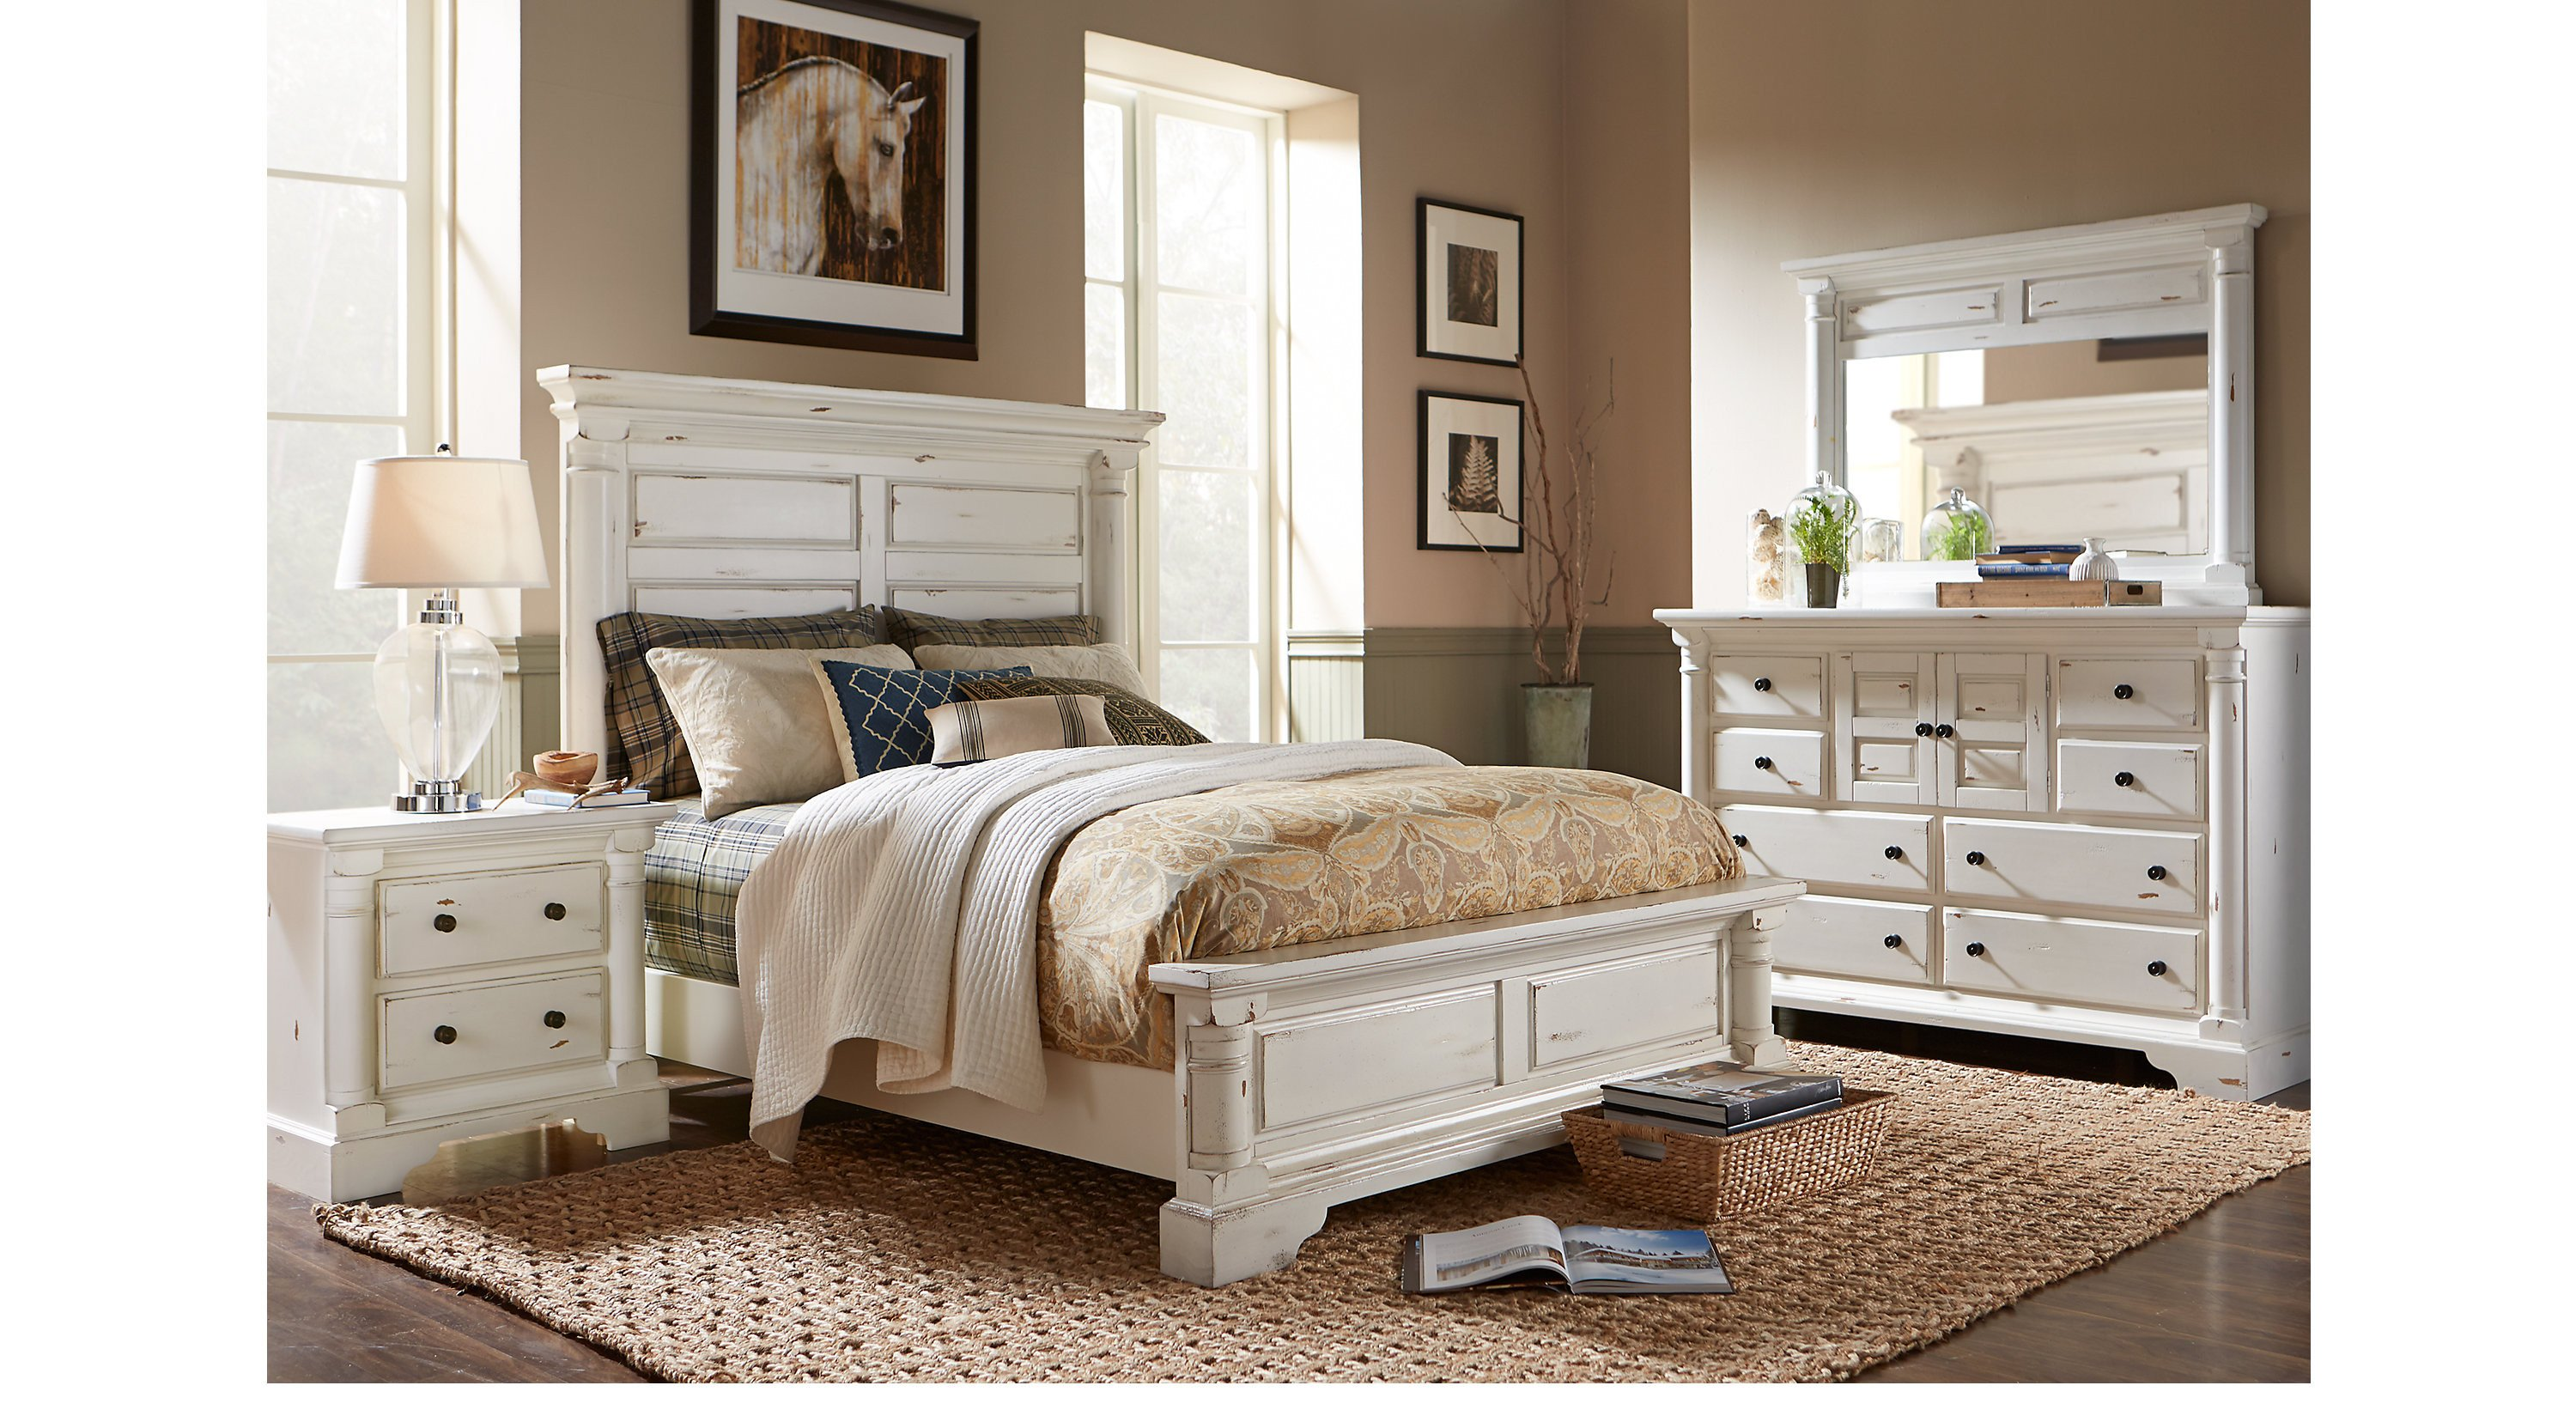 Girls White Bedroom Set Best Of Bestpriceshooversteamvacreplacementp Luxury Bed Back Wall